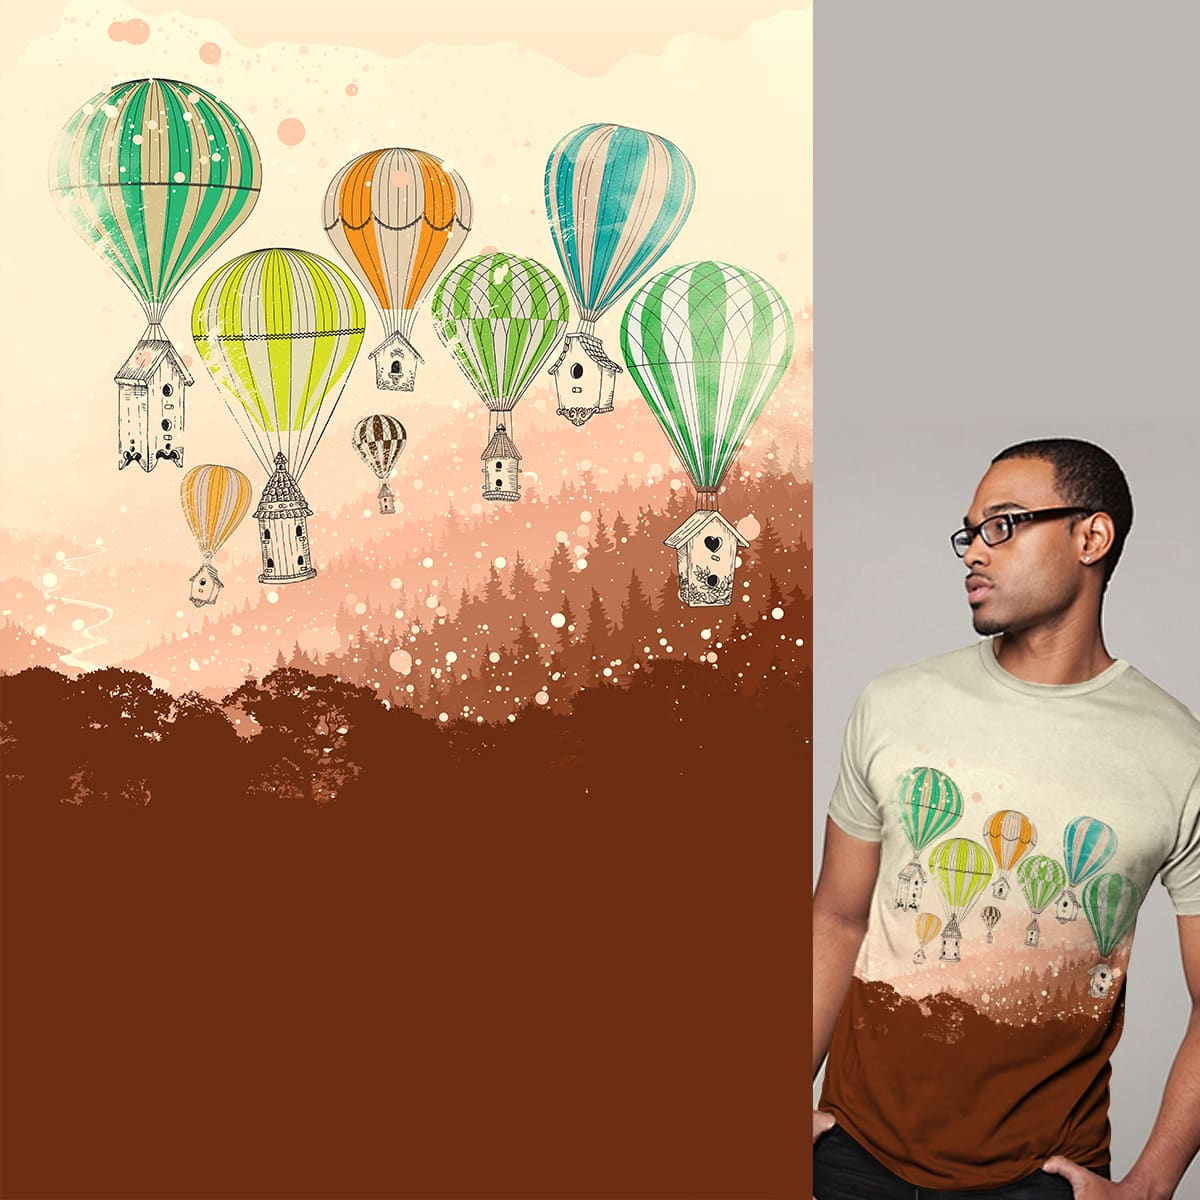 CITY OF BALLOONS by kimkong1014 on Threadless